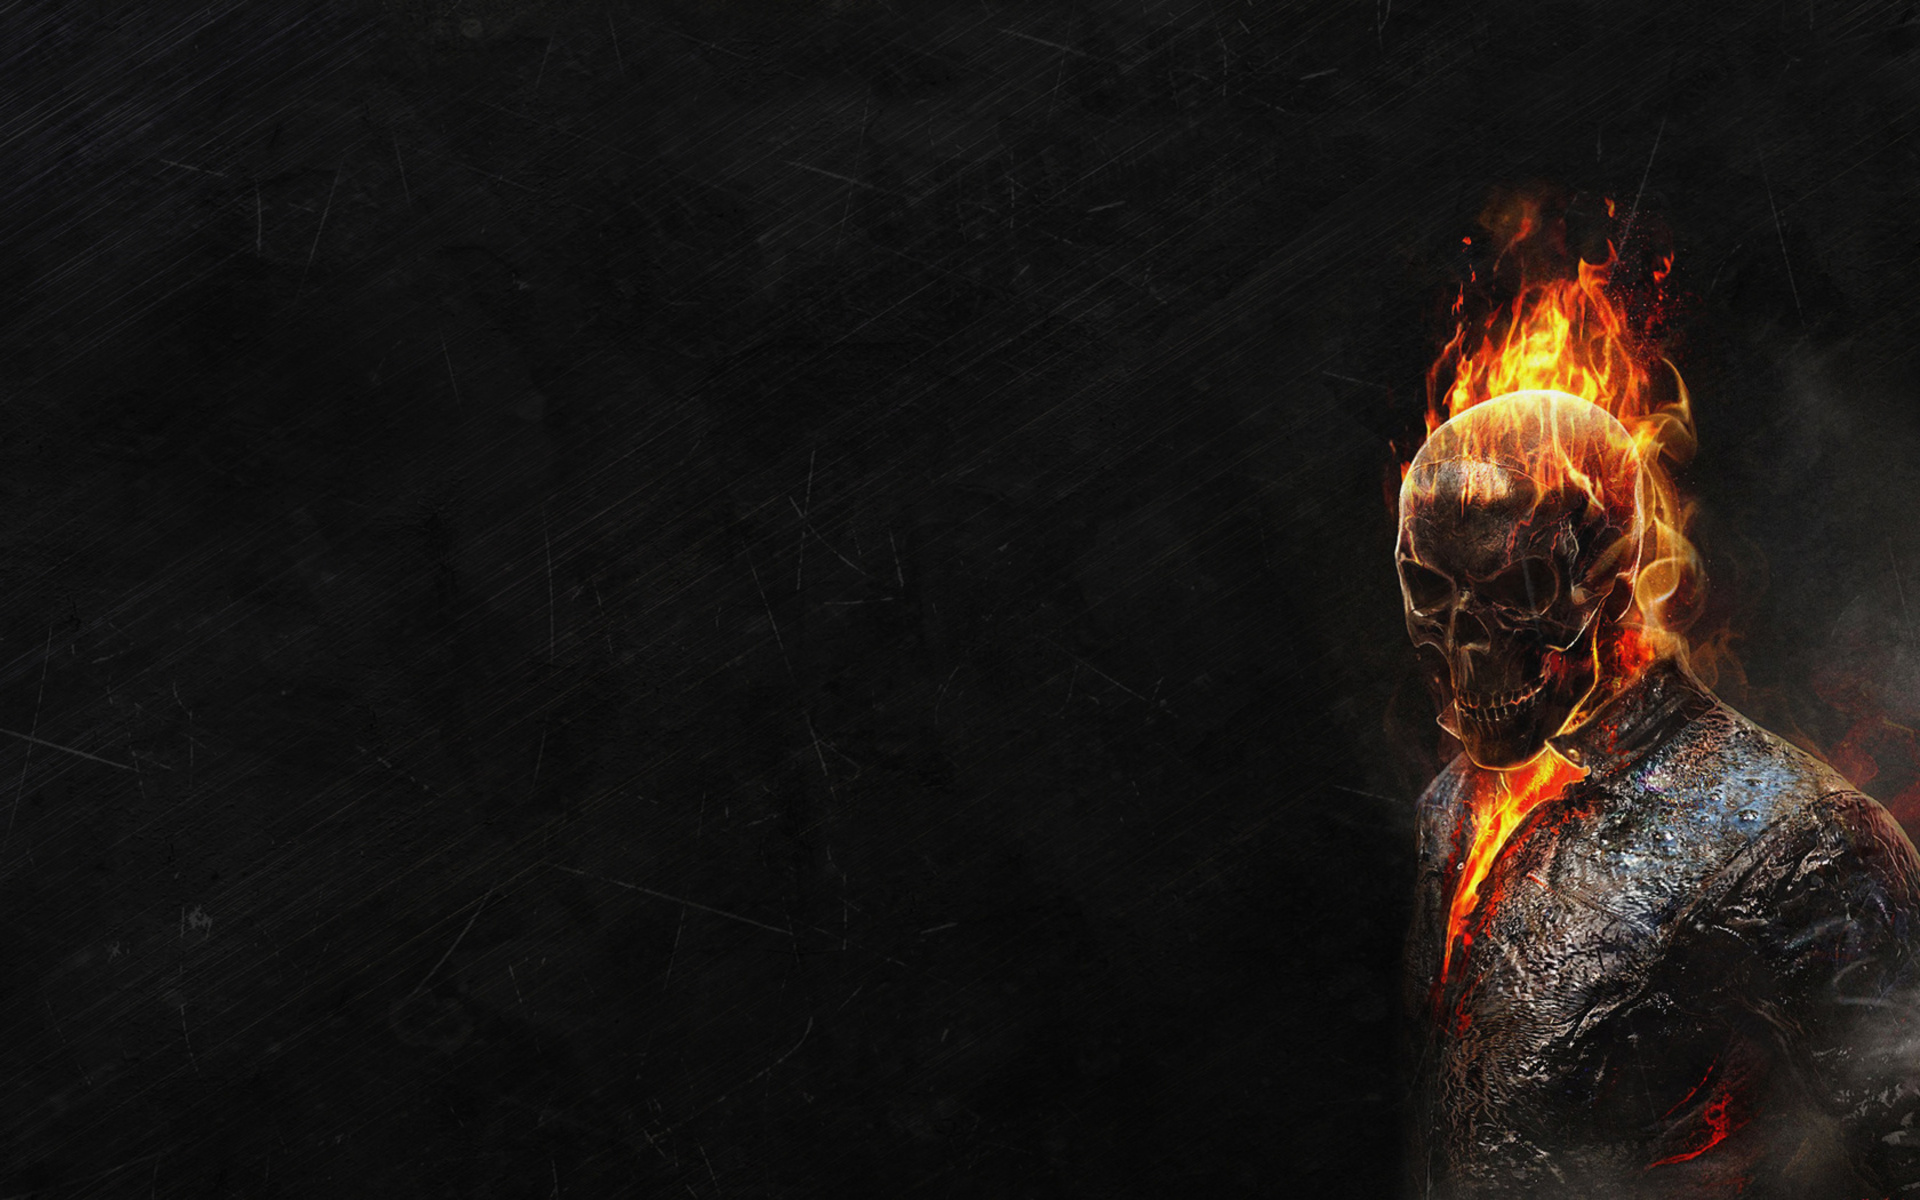 HD Ghost Rider Wallpapers - WallpaperSafari